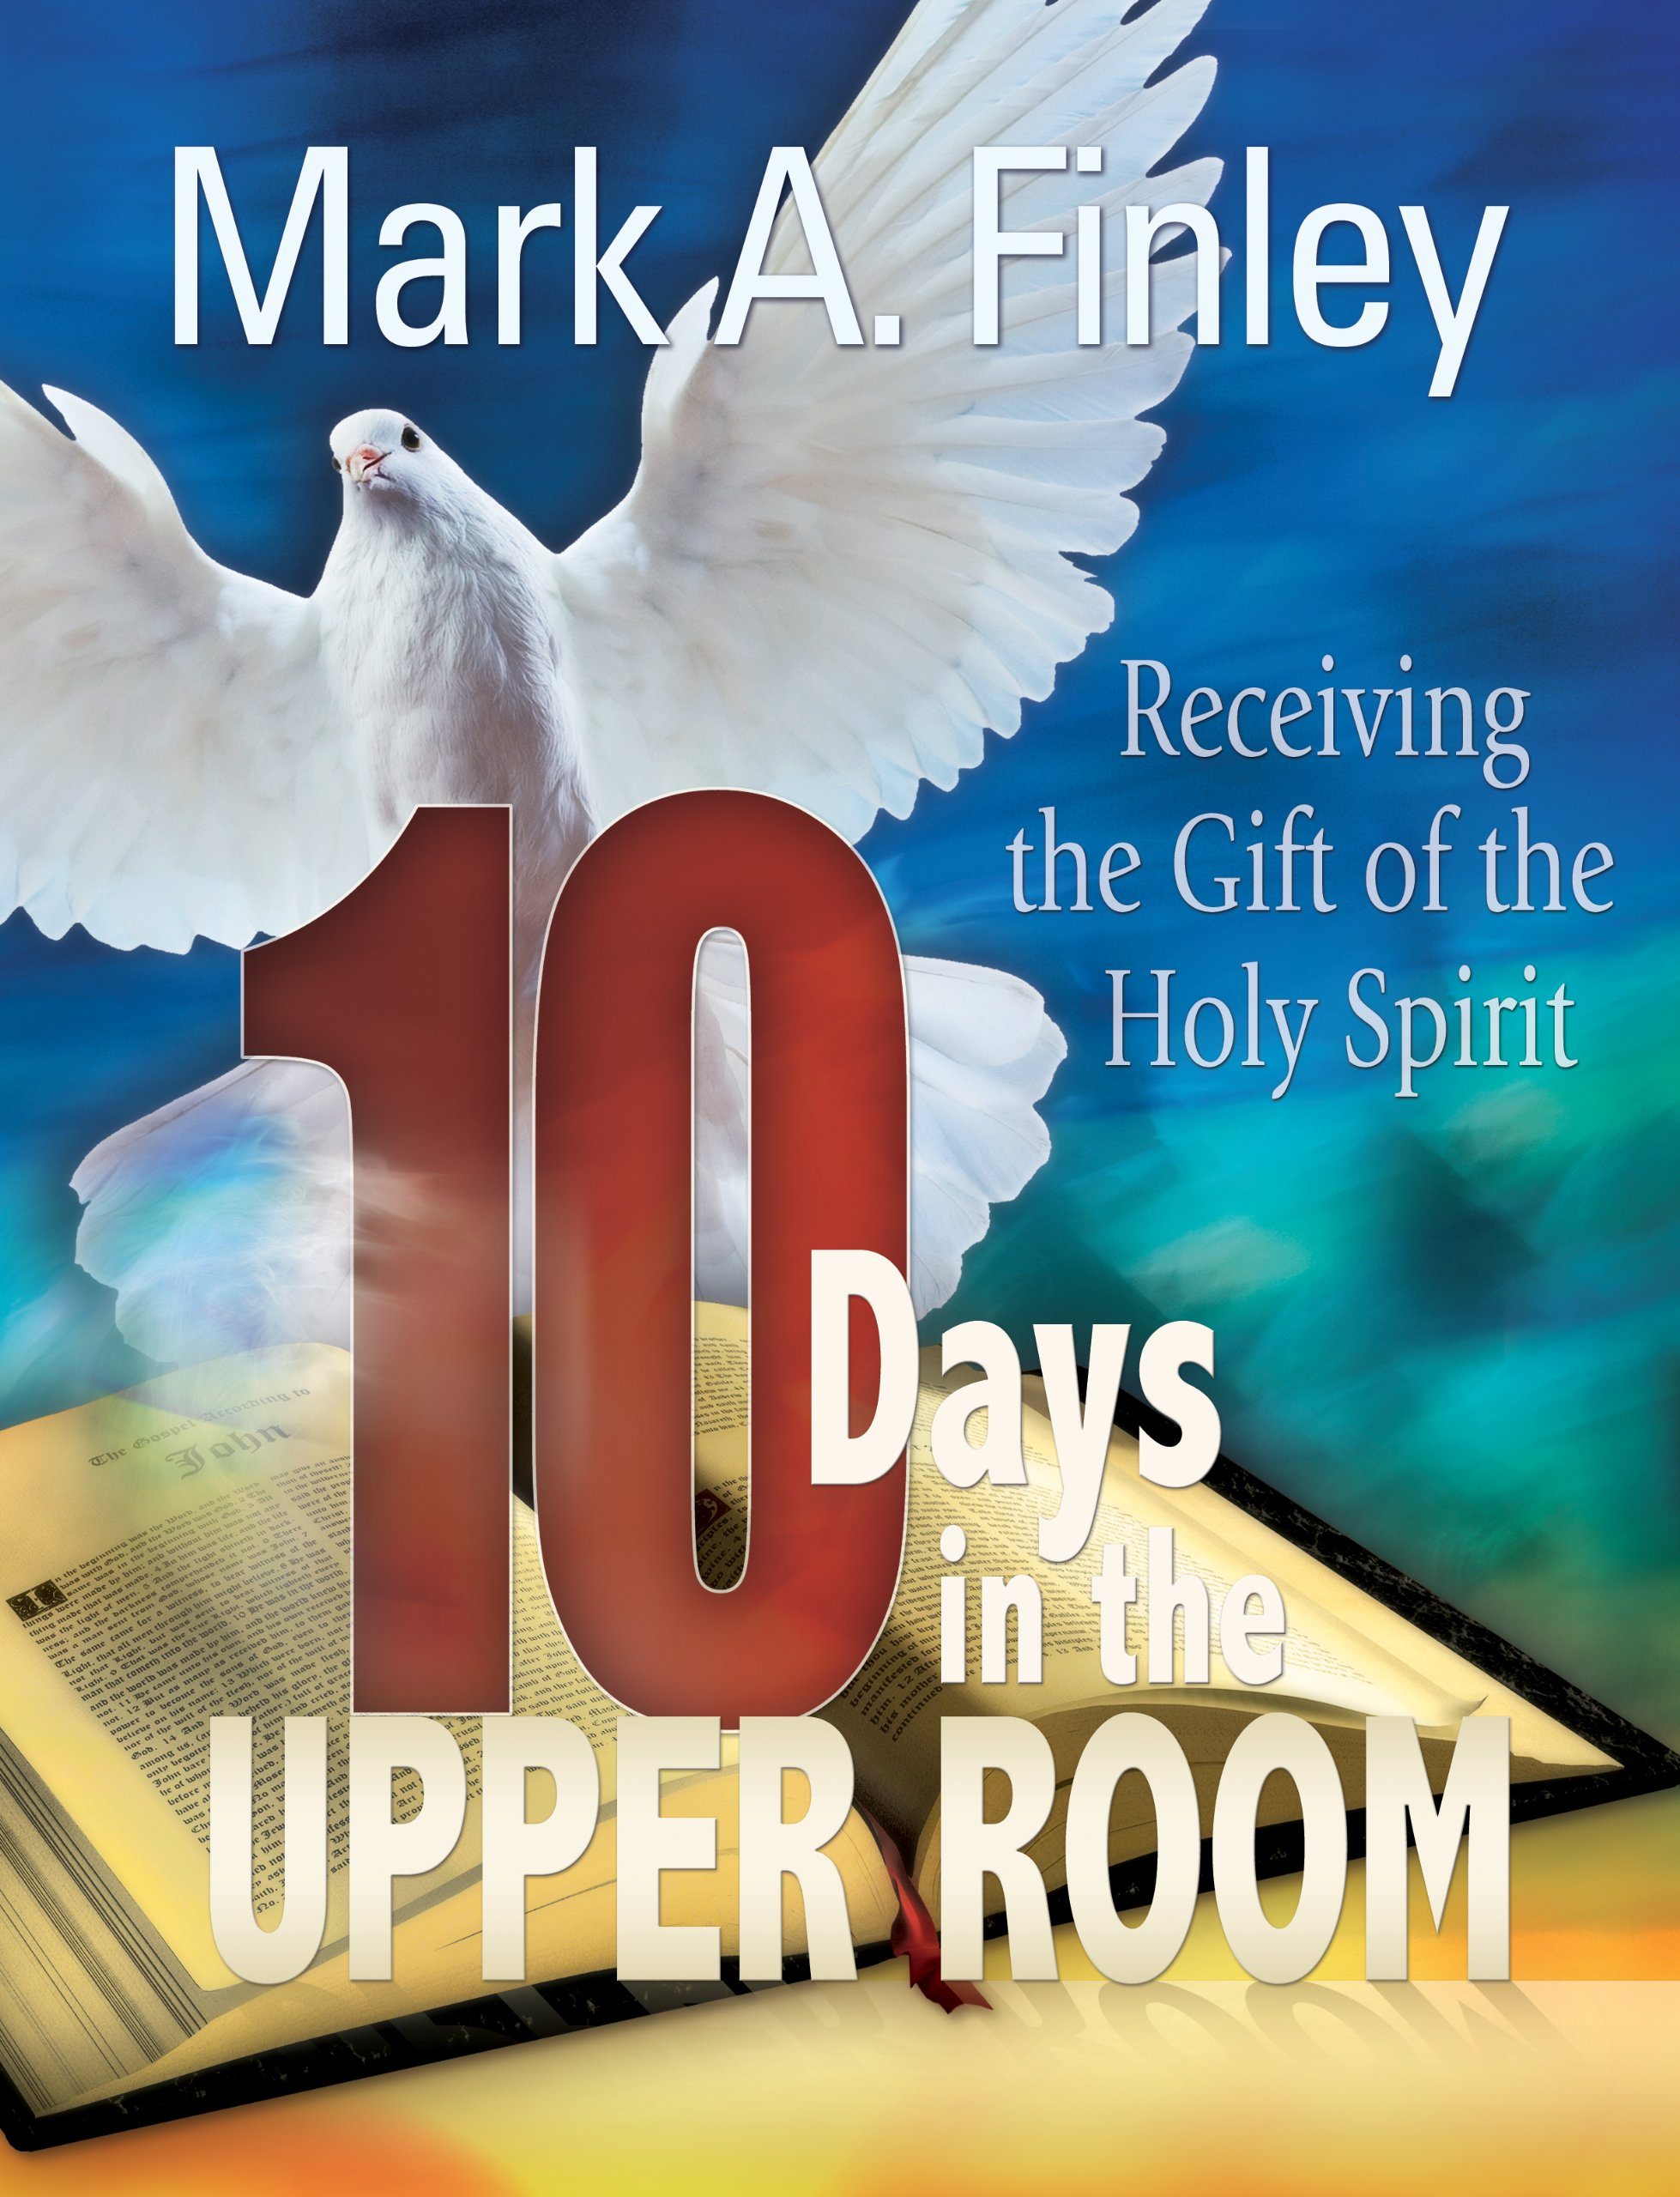 10 days in the upper room mark finley 9780816324873 amazon books fandeluxe Image collections